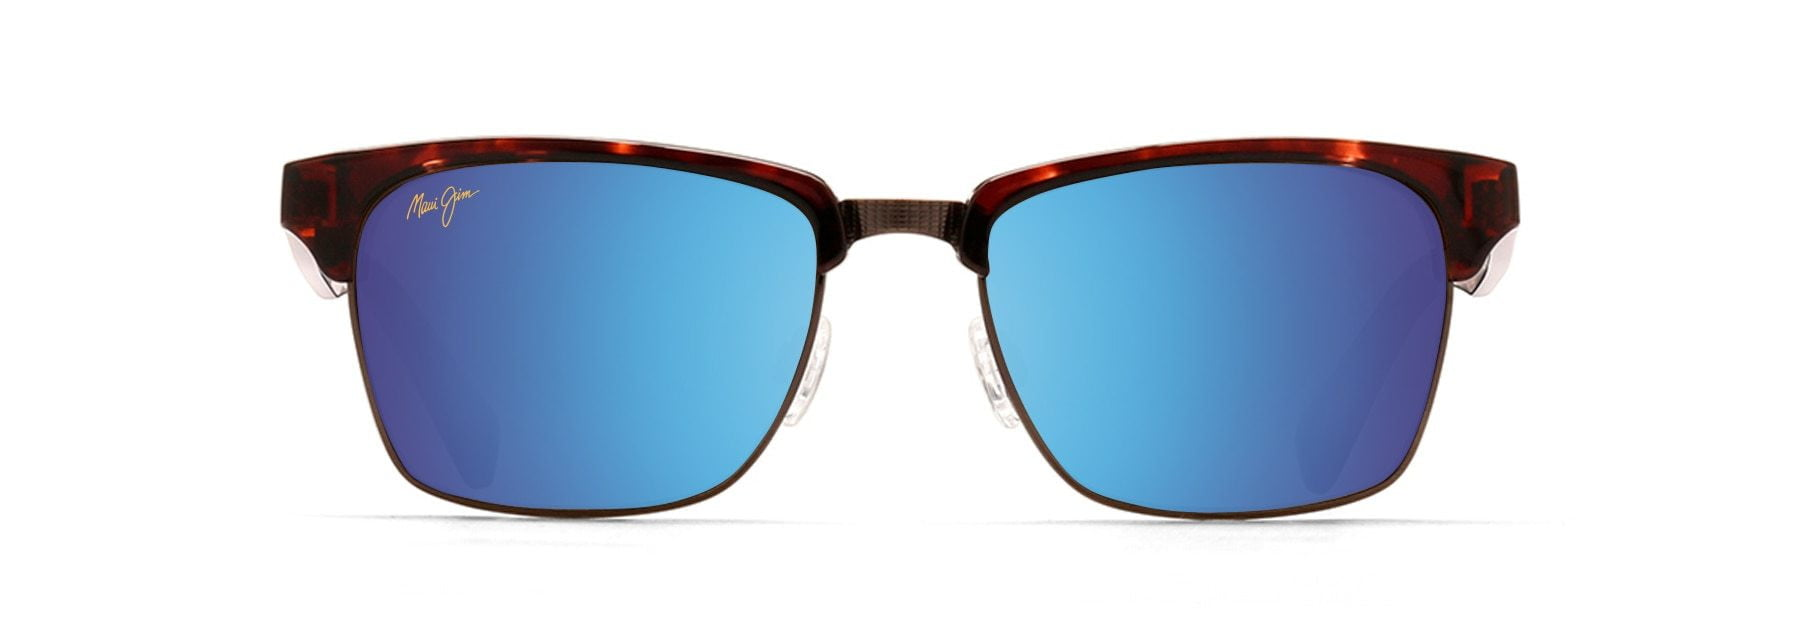 MyMaui Kawika MM257-0016 Sunglasses